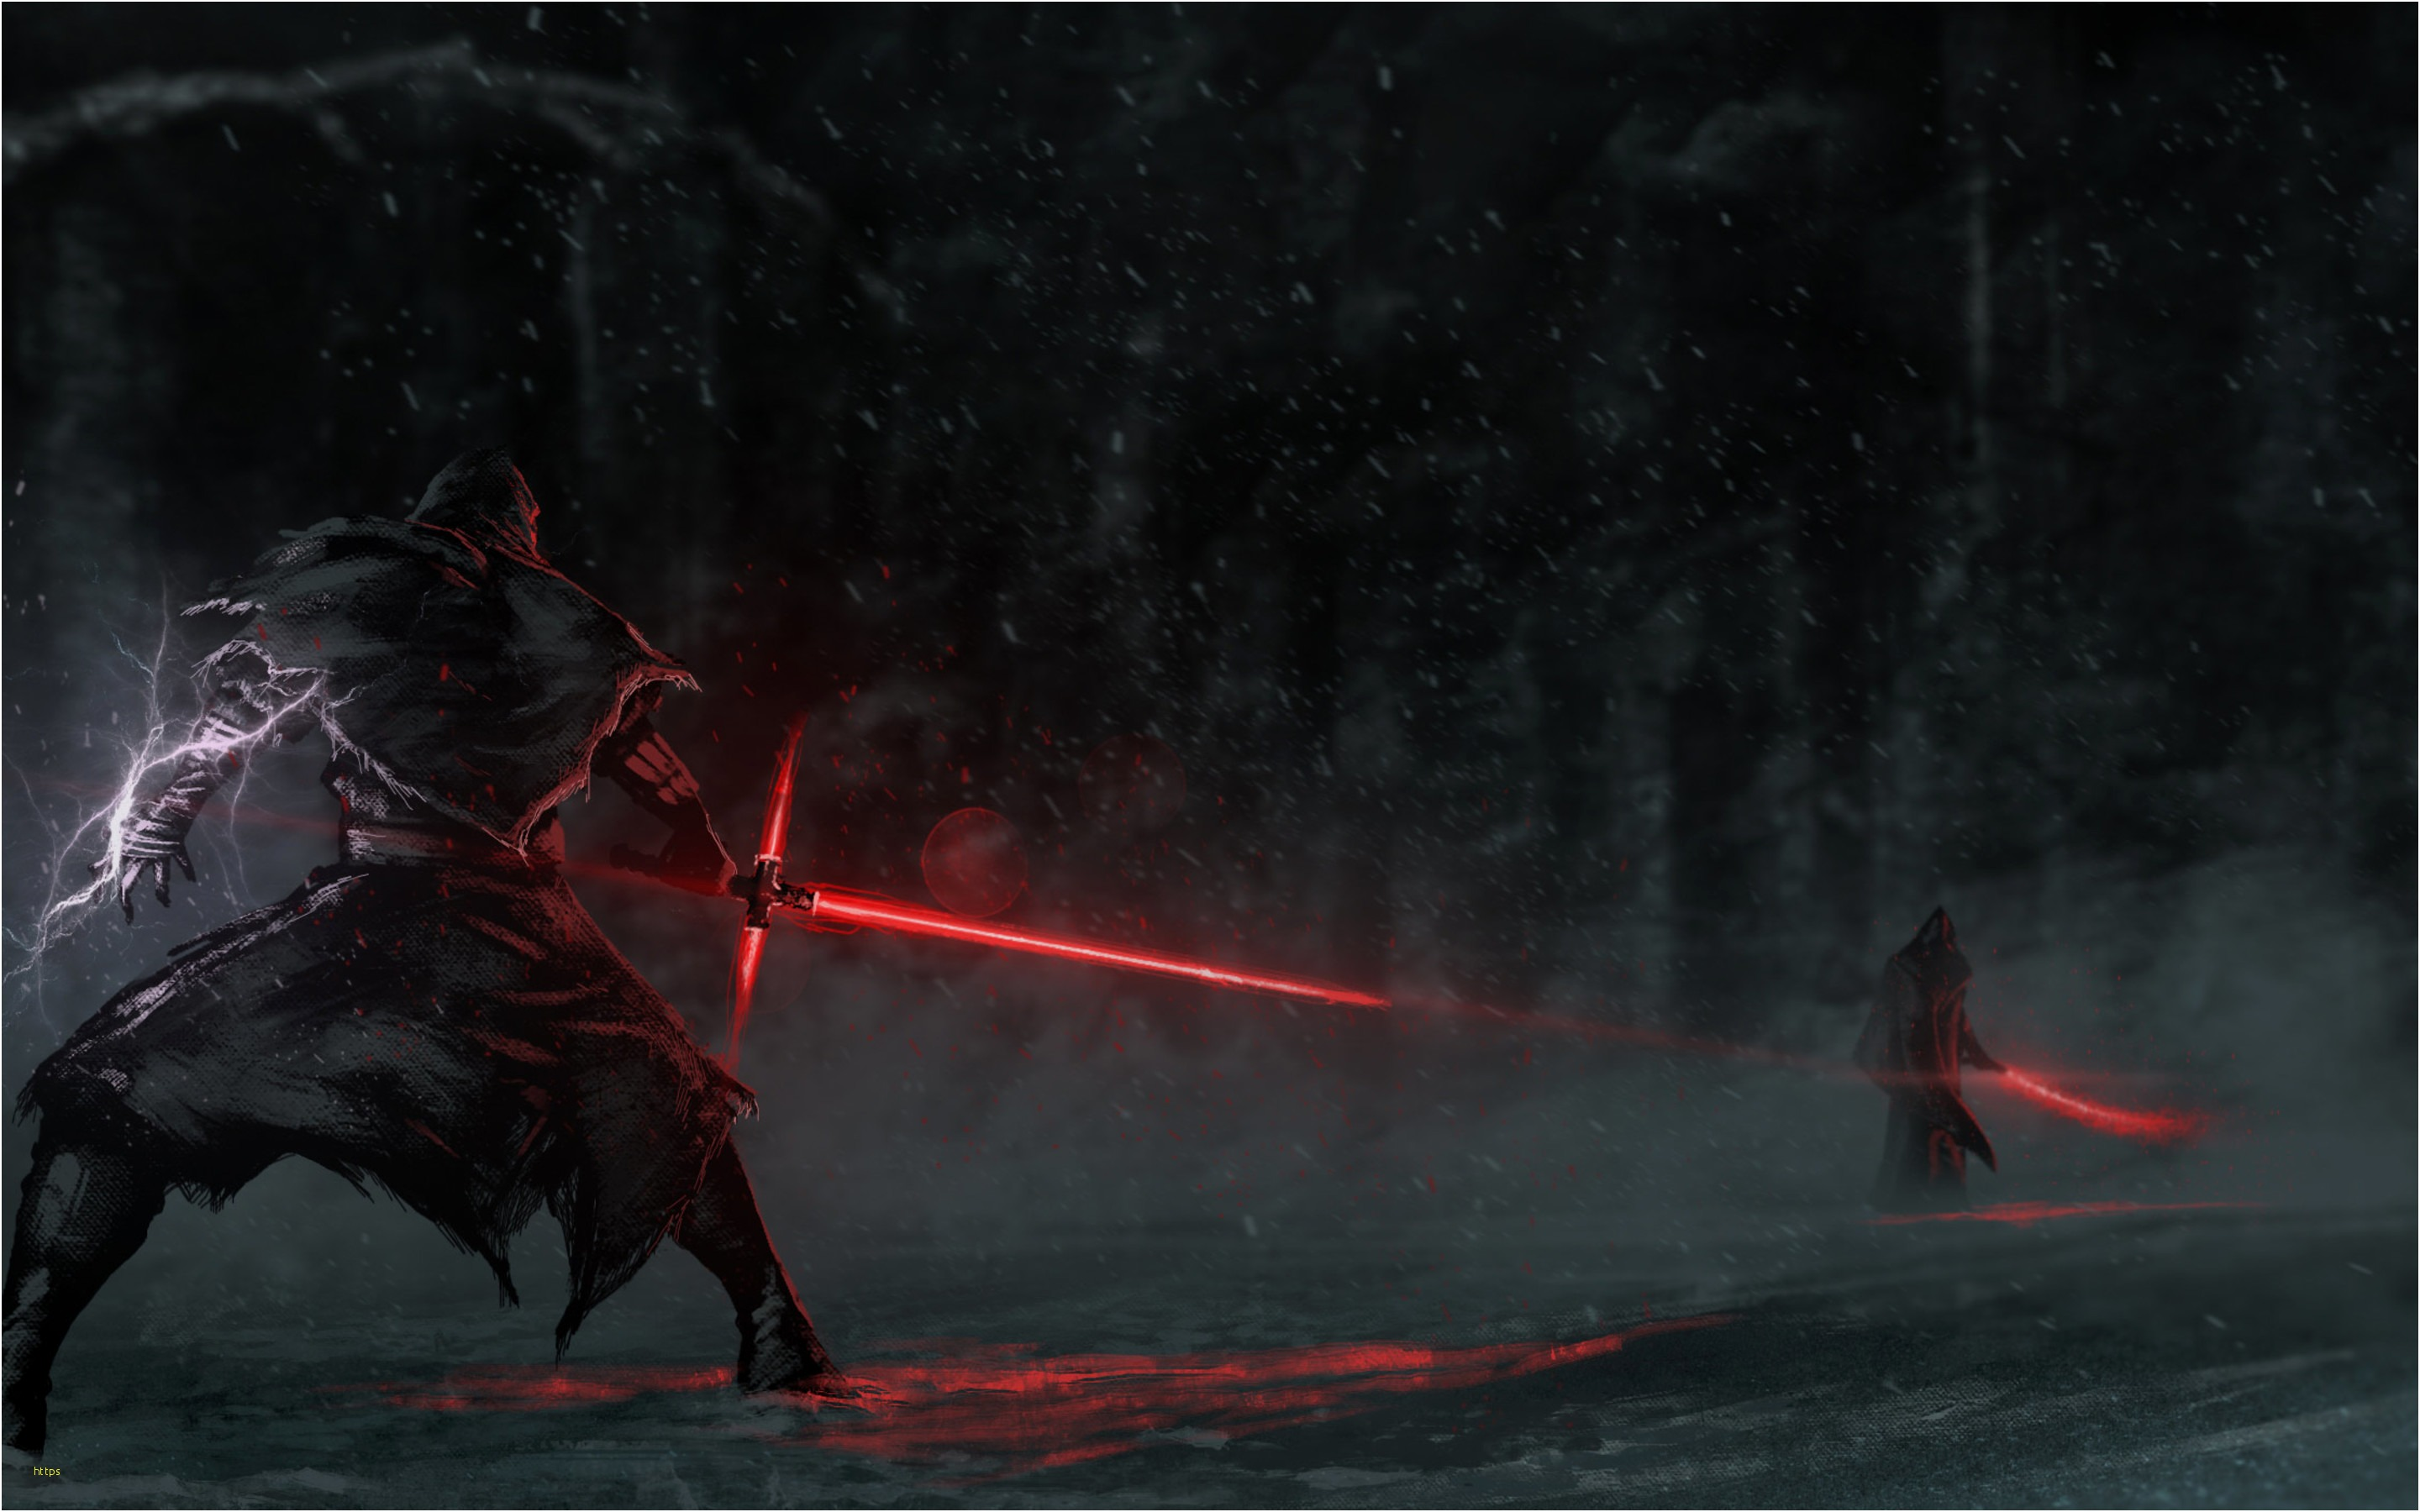 Wallpapers For Macbook Pro Fresh 2880x1800 Star Wars Star